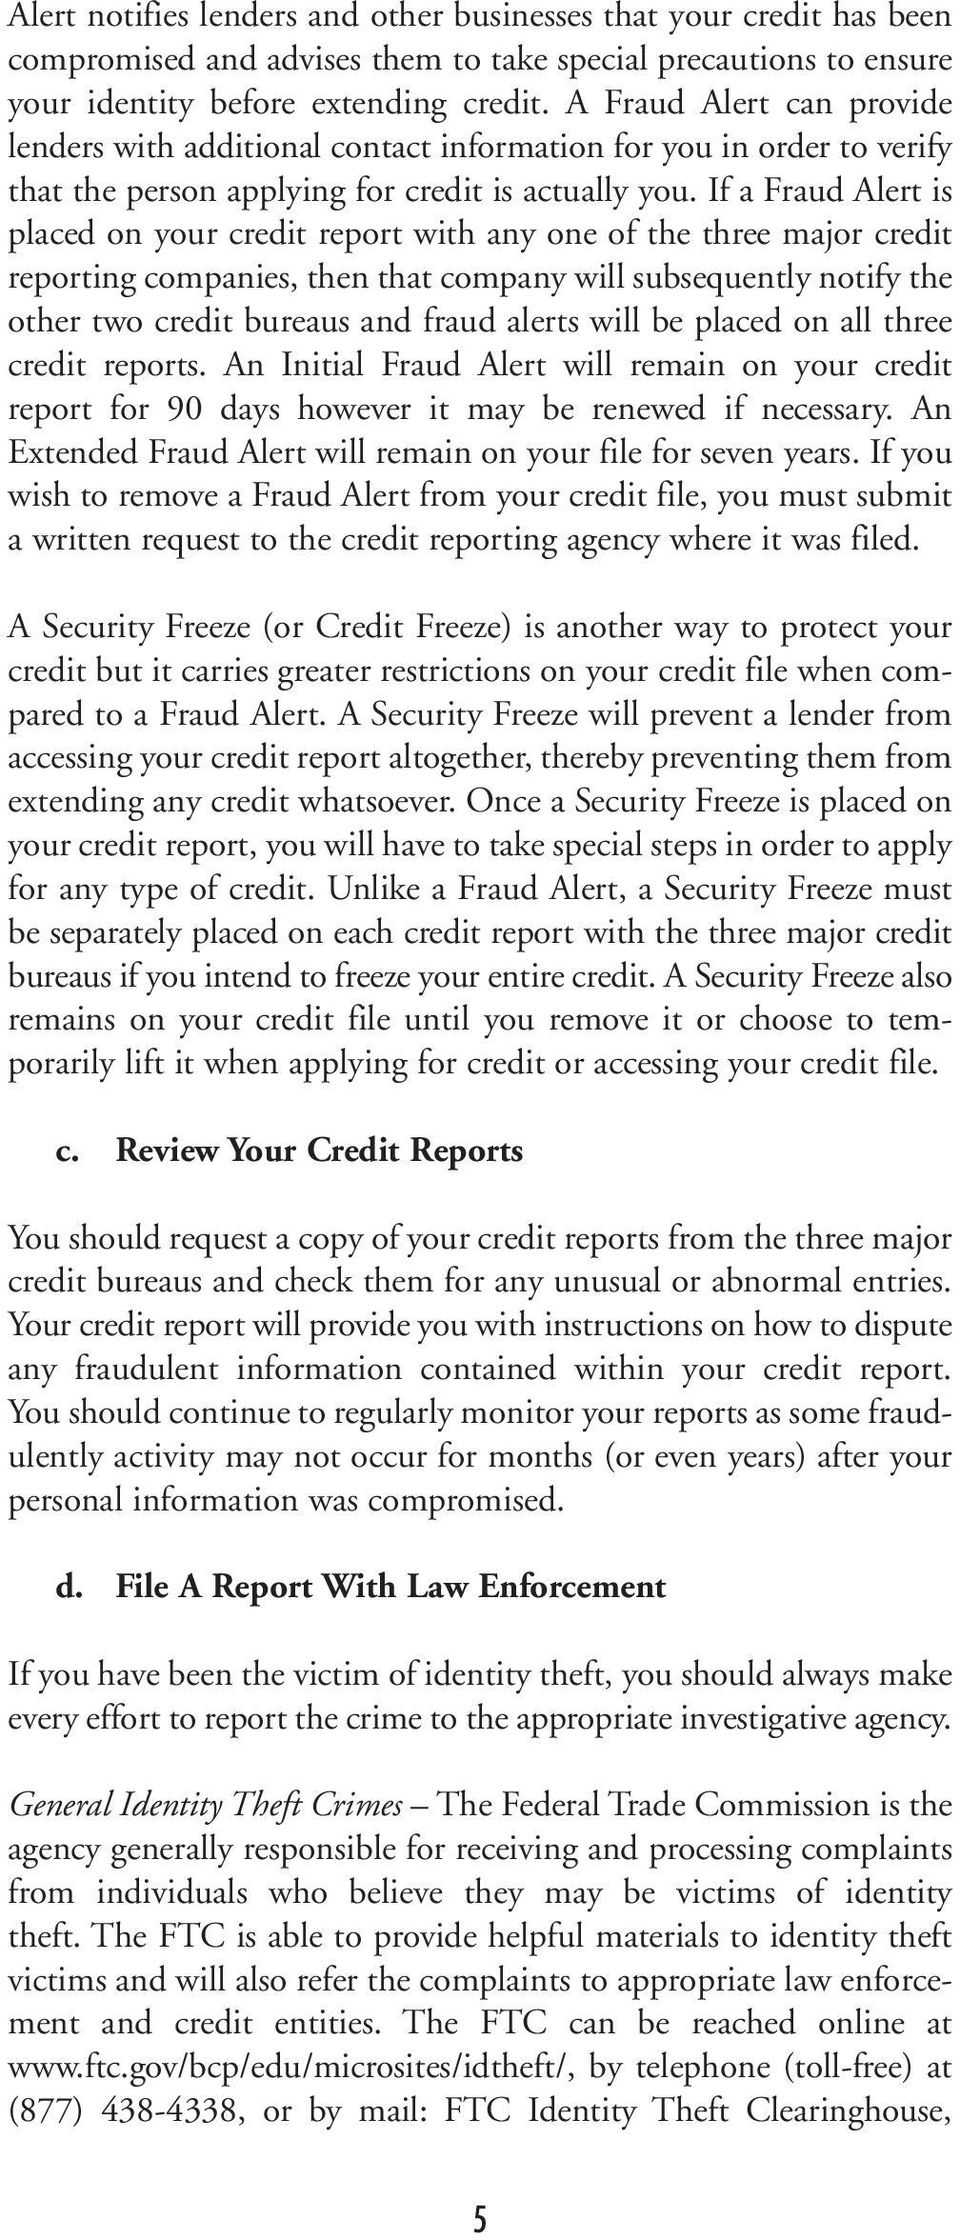 If a Fraud Alert is placed on your credit report with any one of the three major credit reporting companies, then that company will subsequently notify the other two credit bureaus and fraud alerts